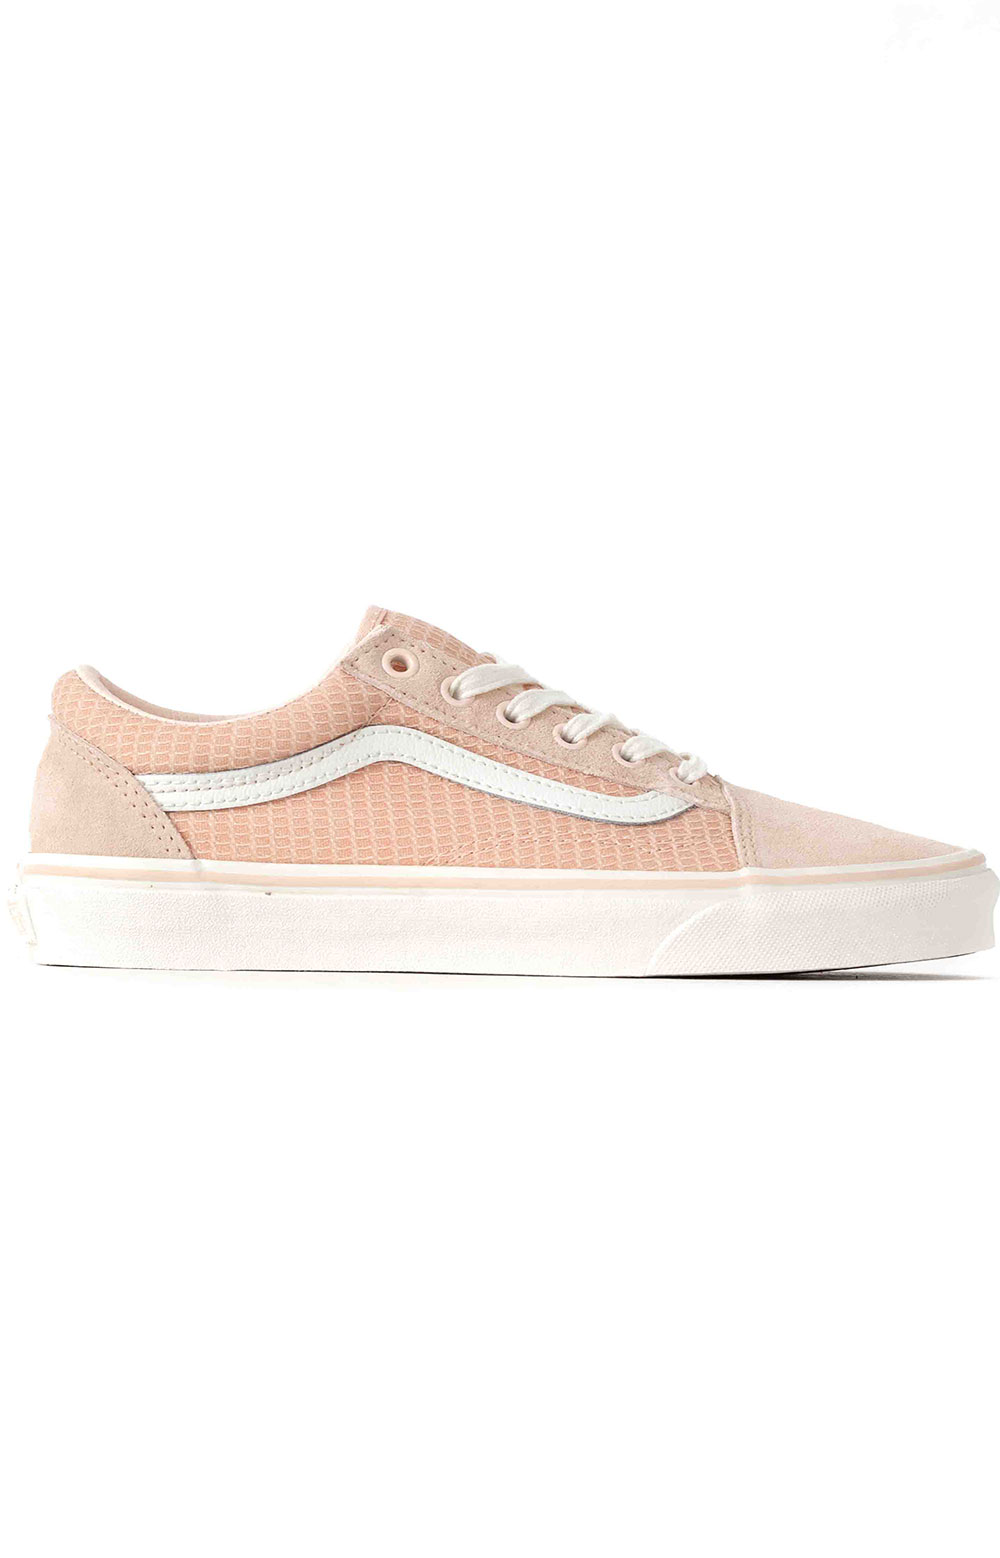 (U3BXF4) Multi Woven Old Skool Shoe - Pink